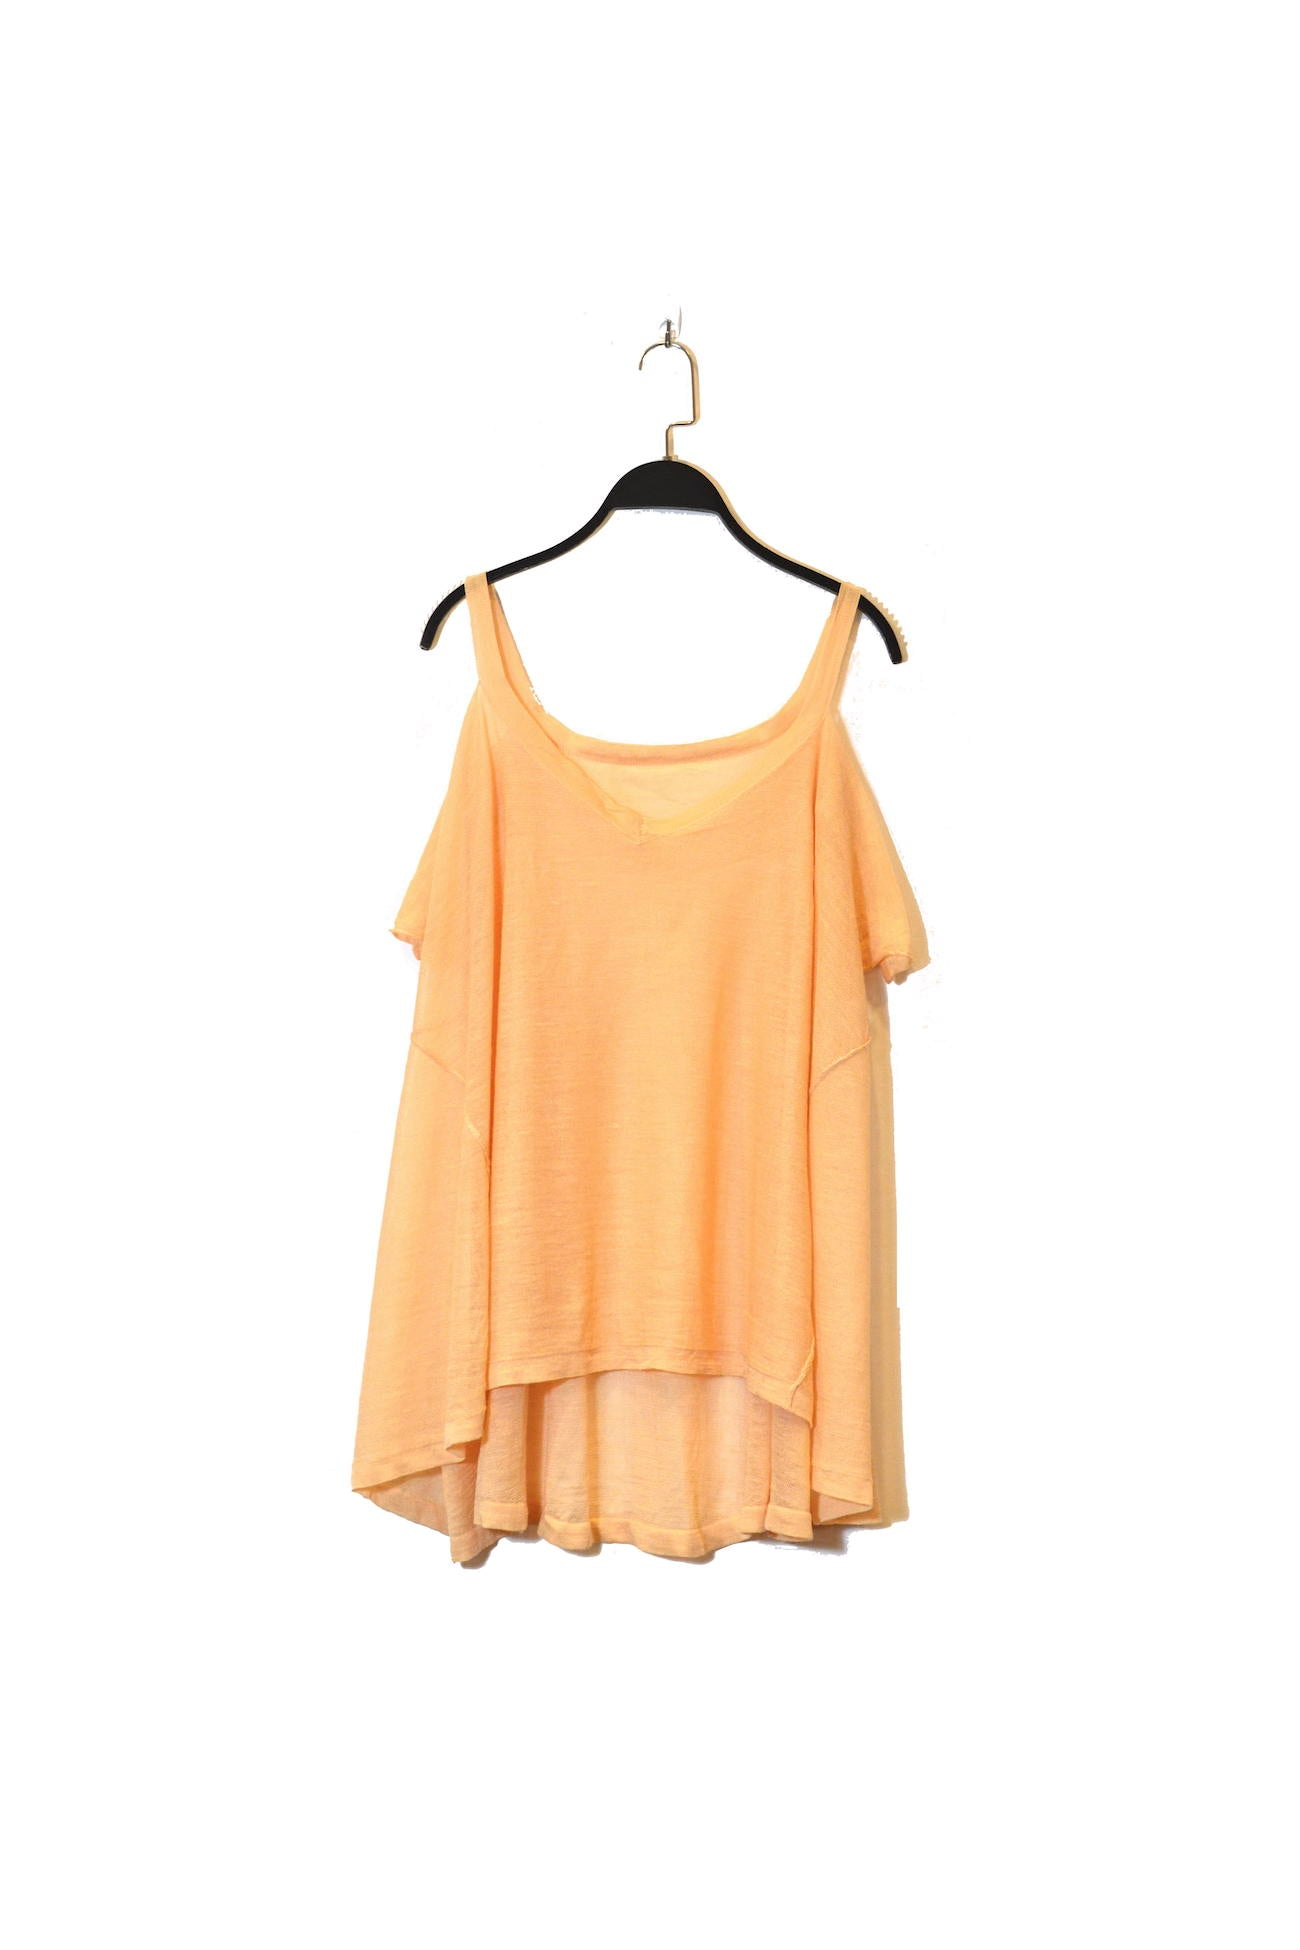 Beige Shoulder Cut-Out Top That Is Semi Sheer With V-Neckline